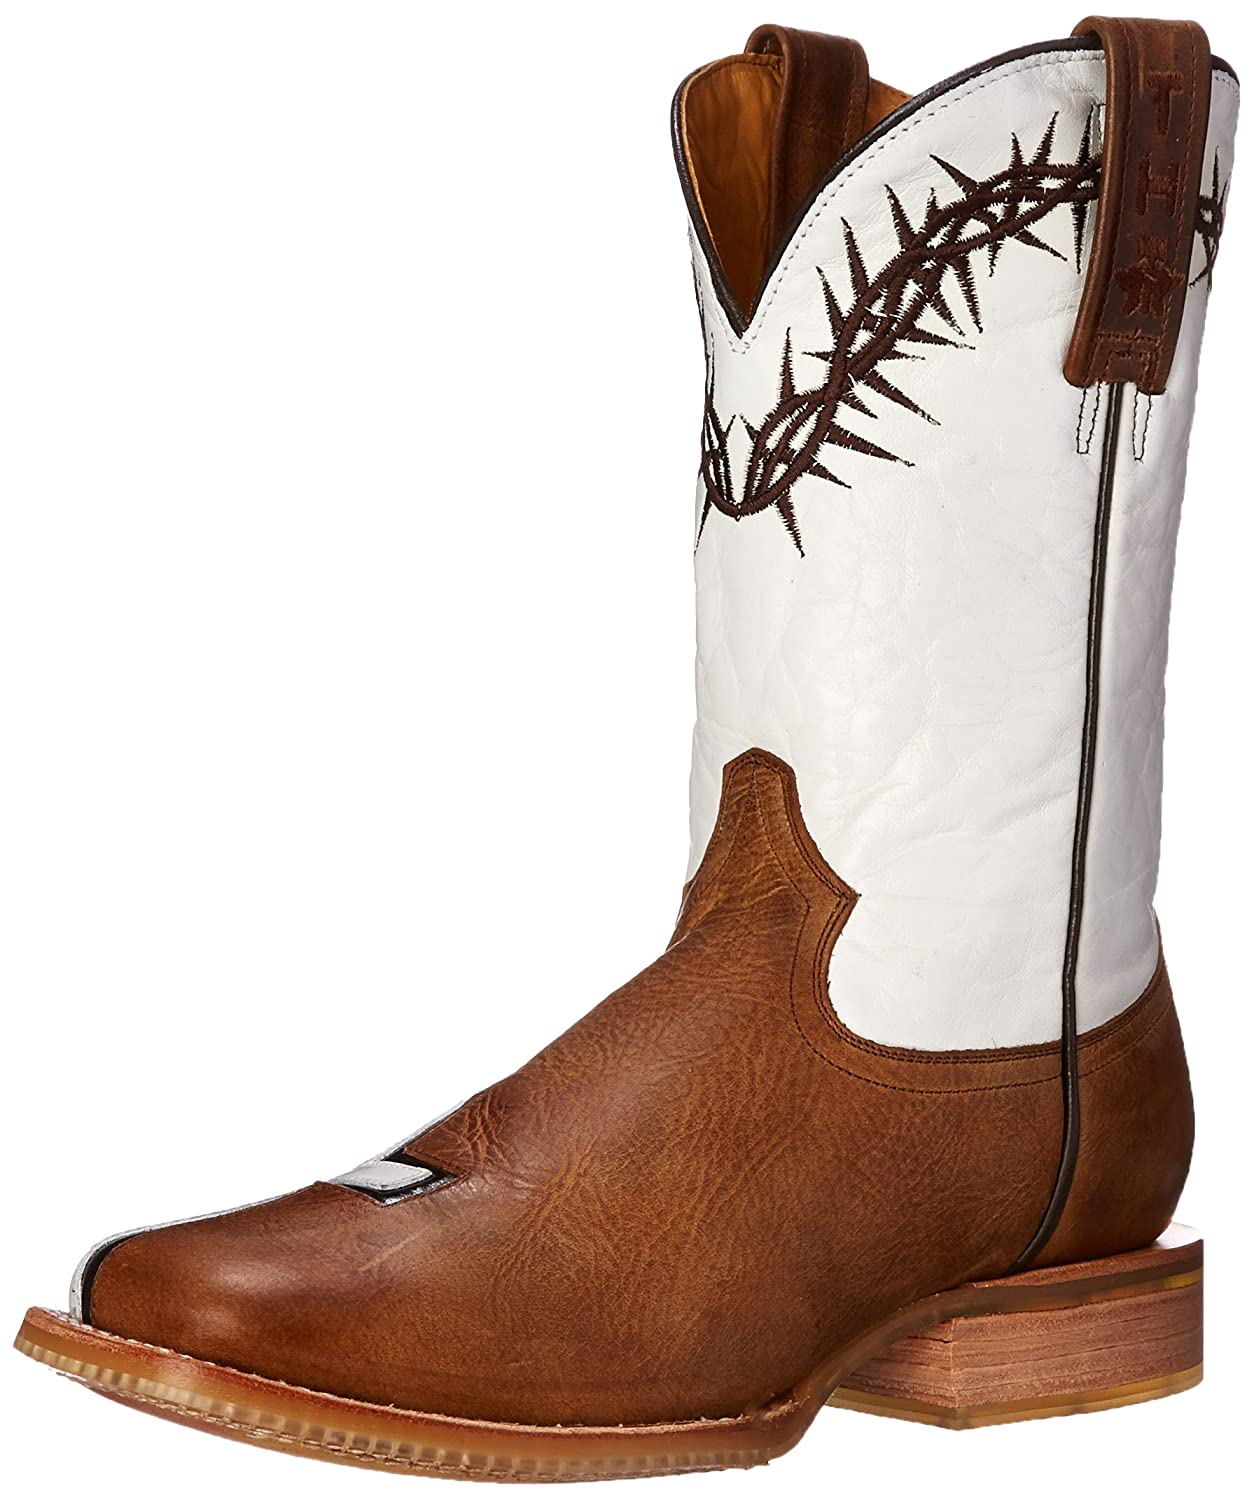 Tin Haul Shoes Women's Between Two Thieves Ladies Western Boot B00NHYX9NQ 6 B(M) US|Brown/White